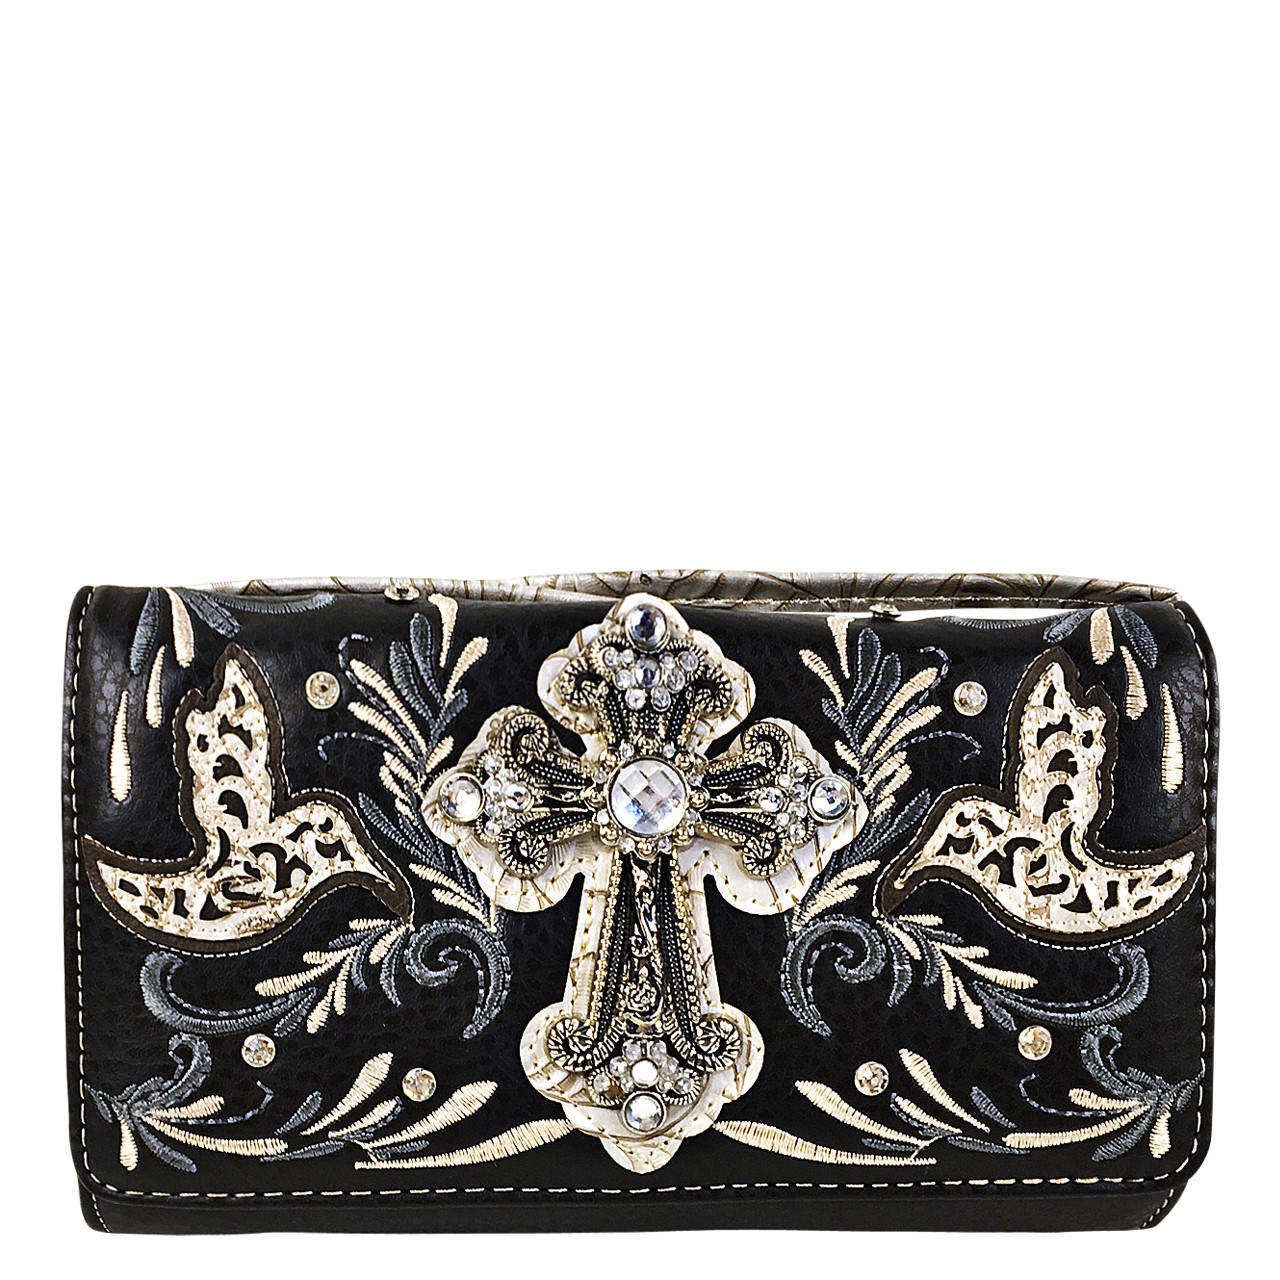 BLACK STUDDED RHINESTONE CROSS WITH STITCHED LOOK CLUTCH TRIFOLD WALLET